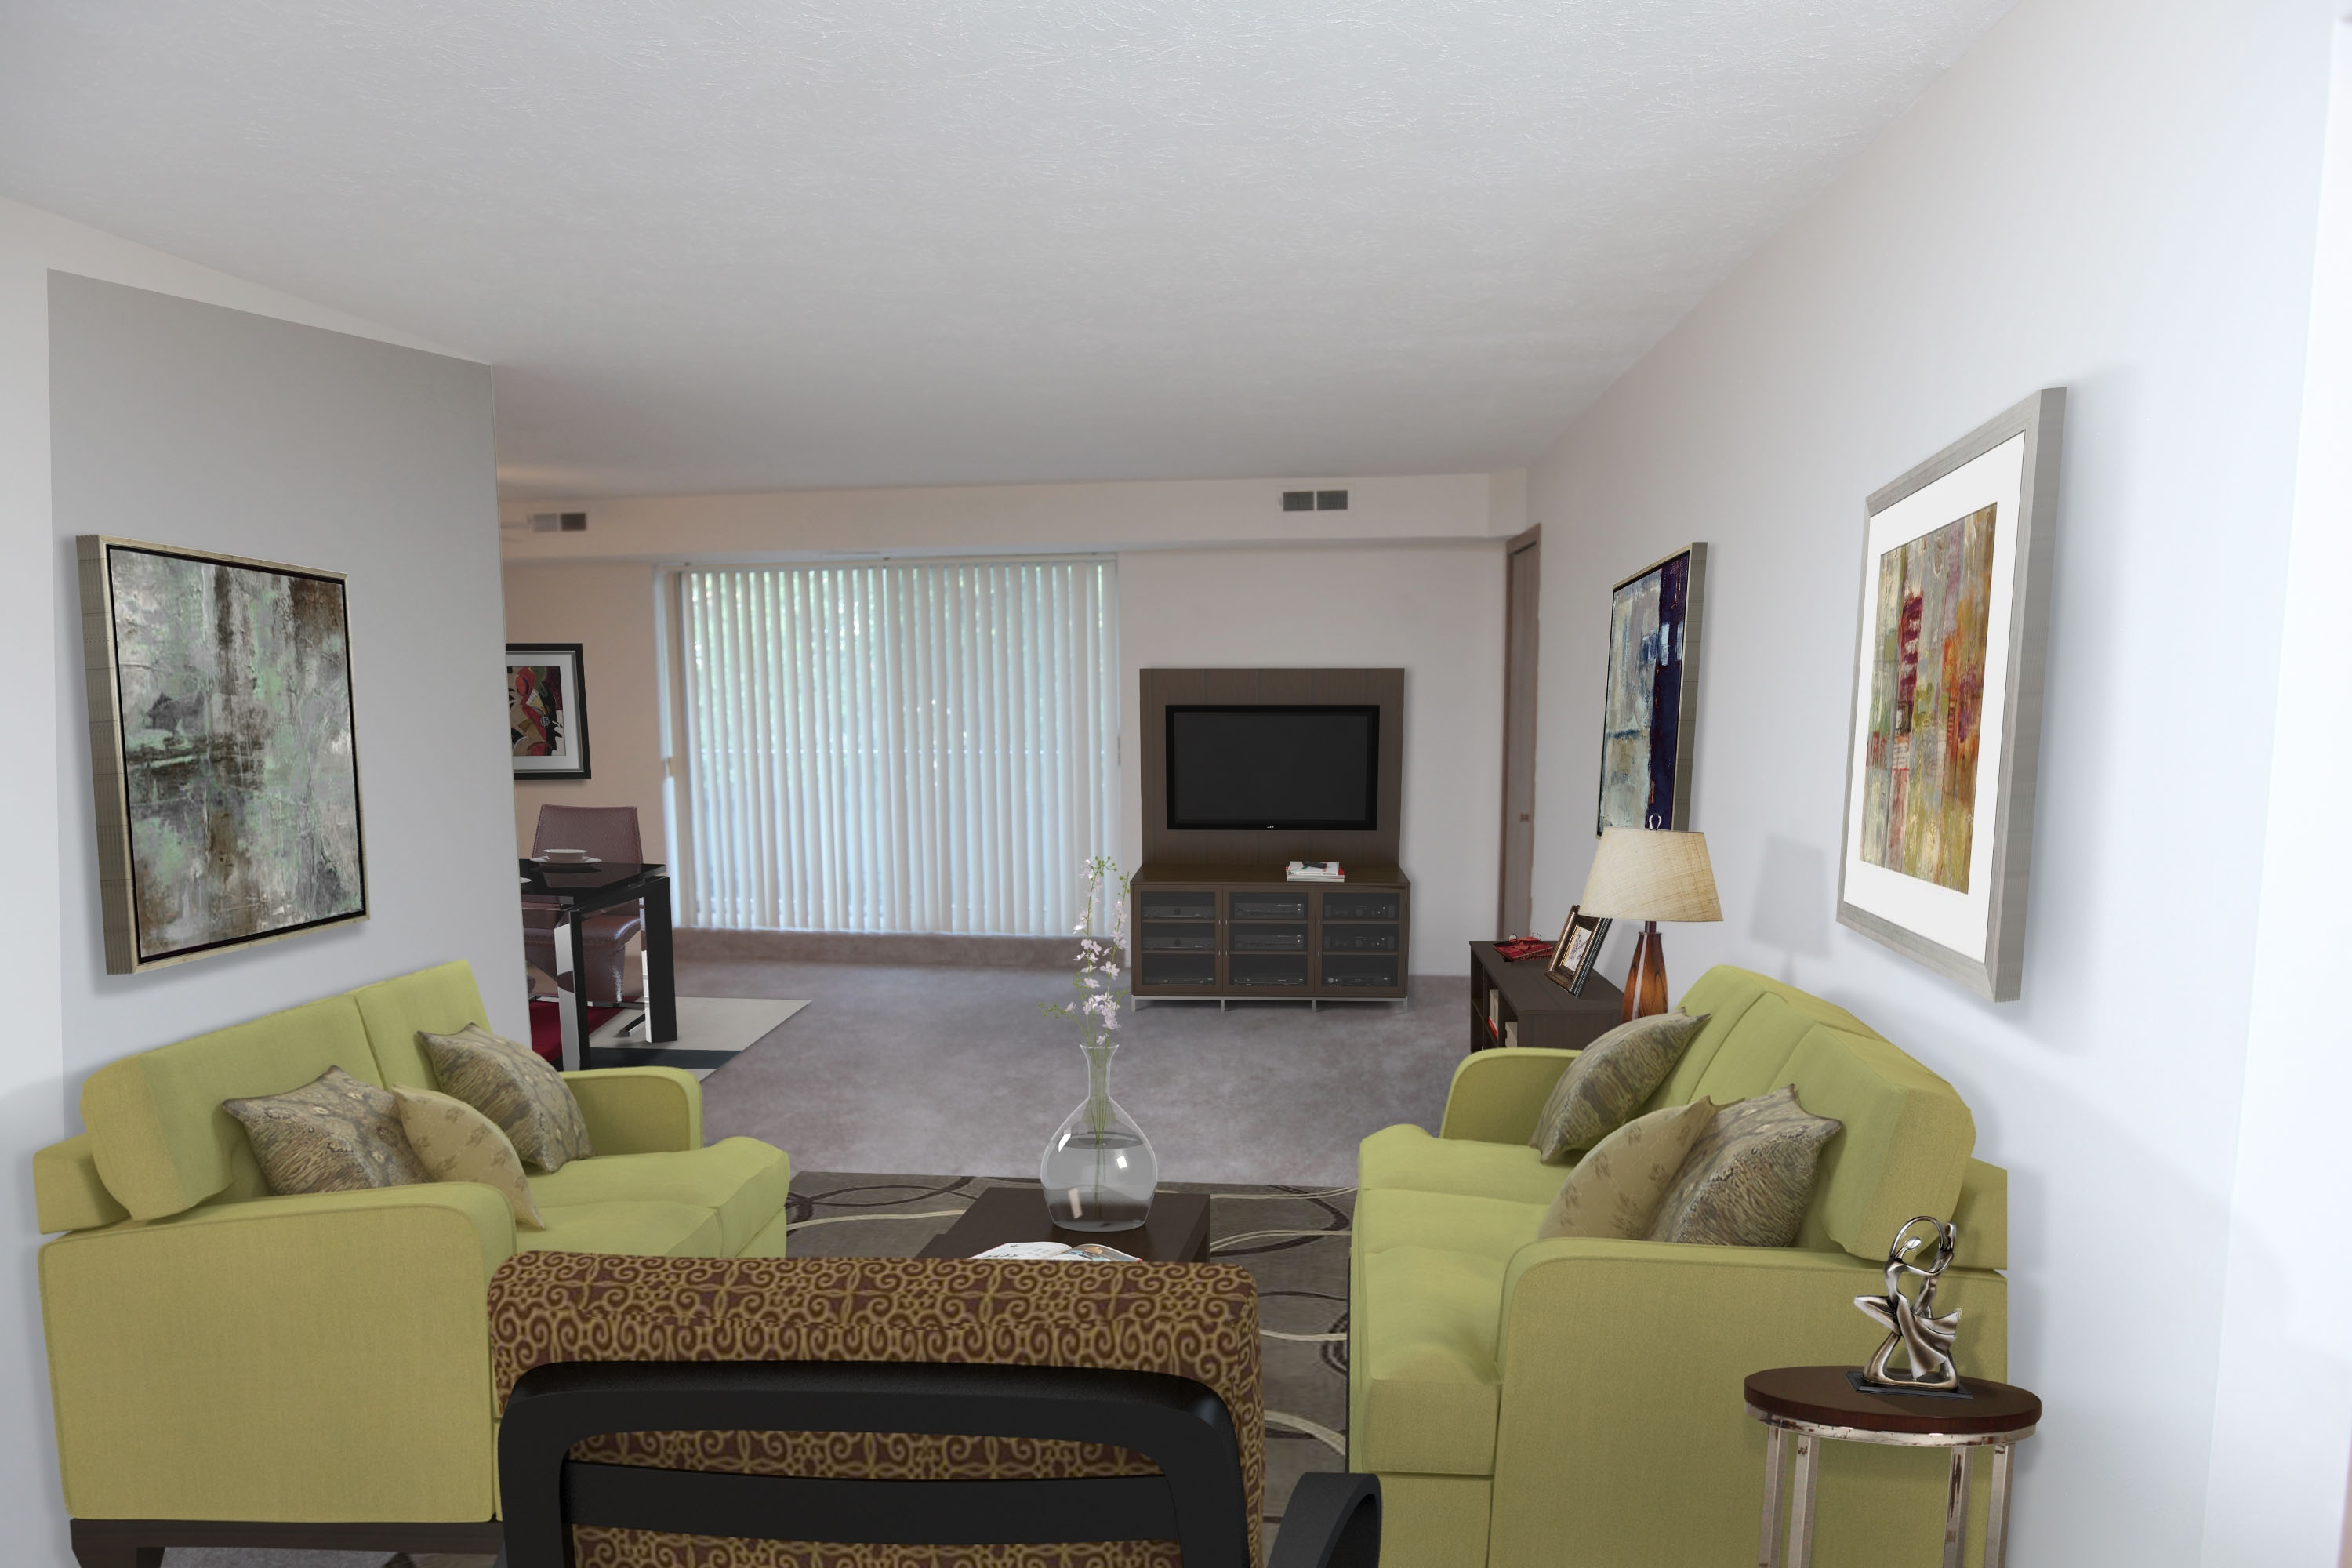 1B Living Room Furnished at the Greenridge on Euclid Apartments in Euclid, OH